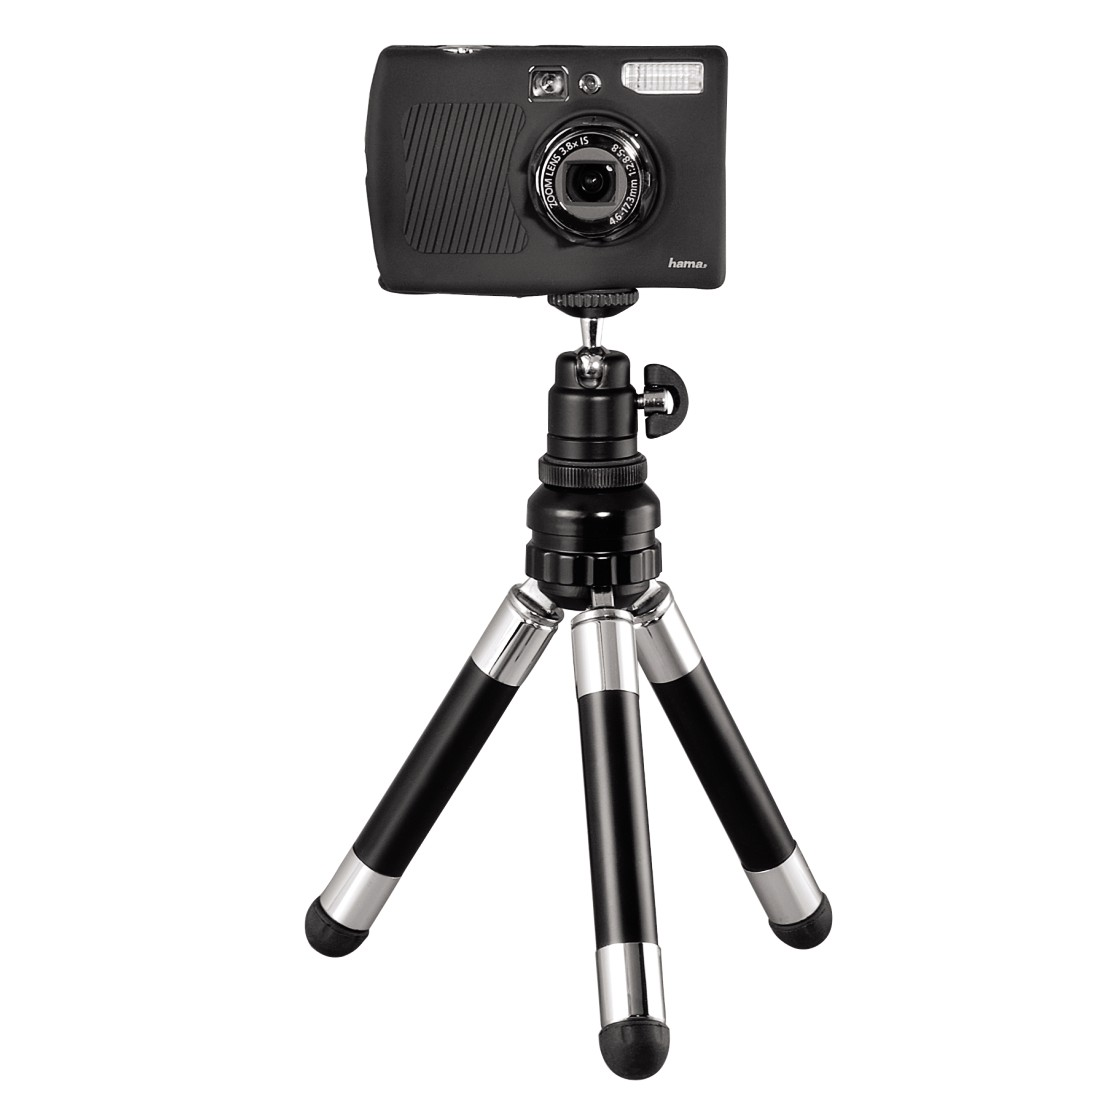 awx6 High-Res Appliance 6 - Hama, Traveller Multi Table Top Tripod, with Removable Telescopic Tube